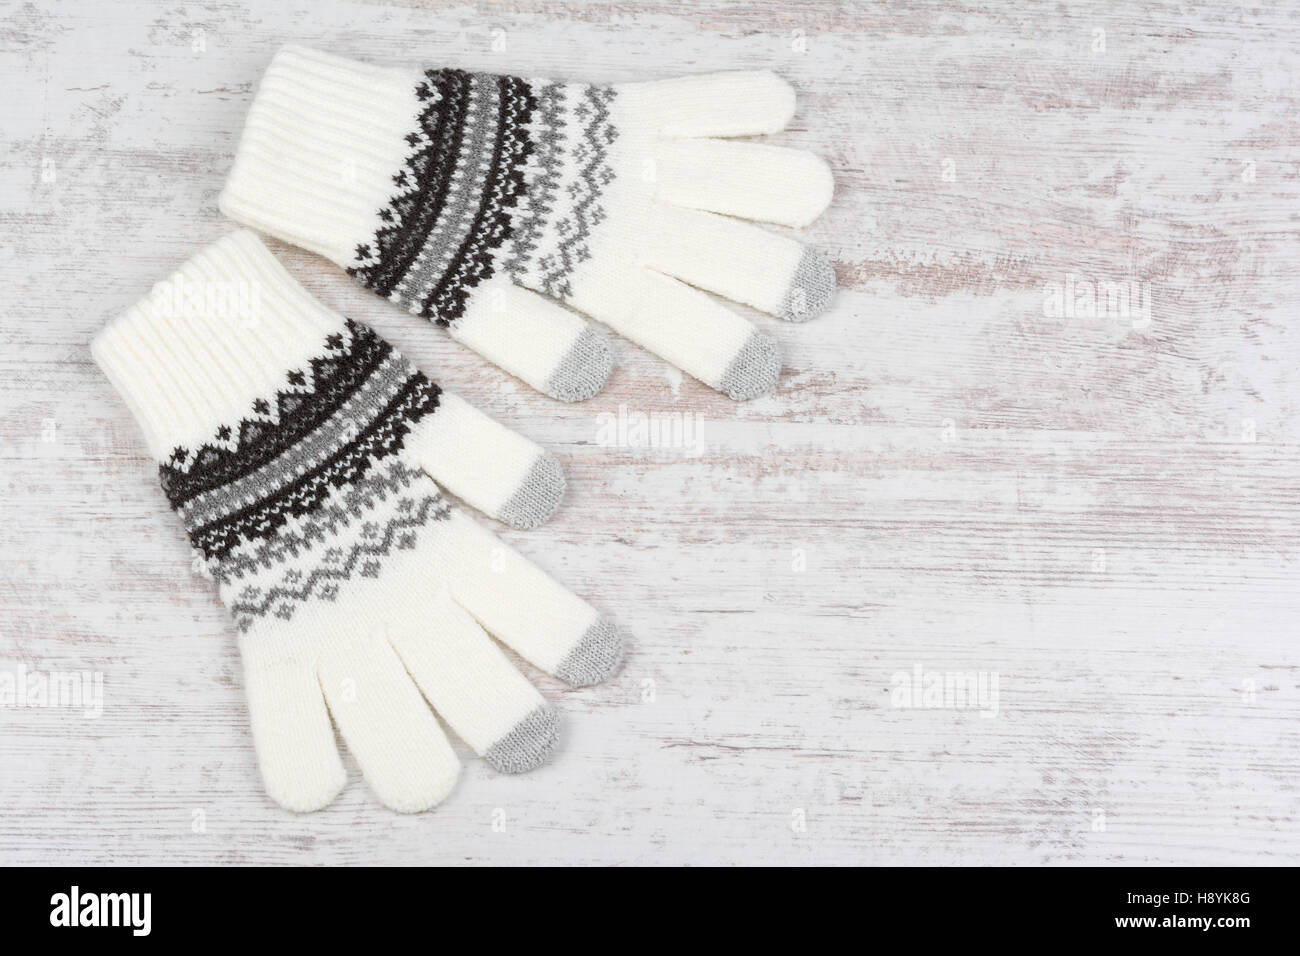 A pair of winter knitted gloves on white wooden background - Stock Image